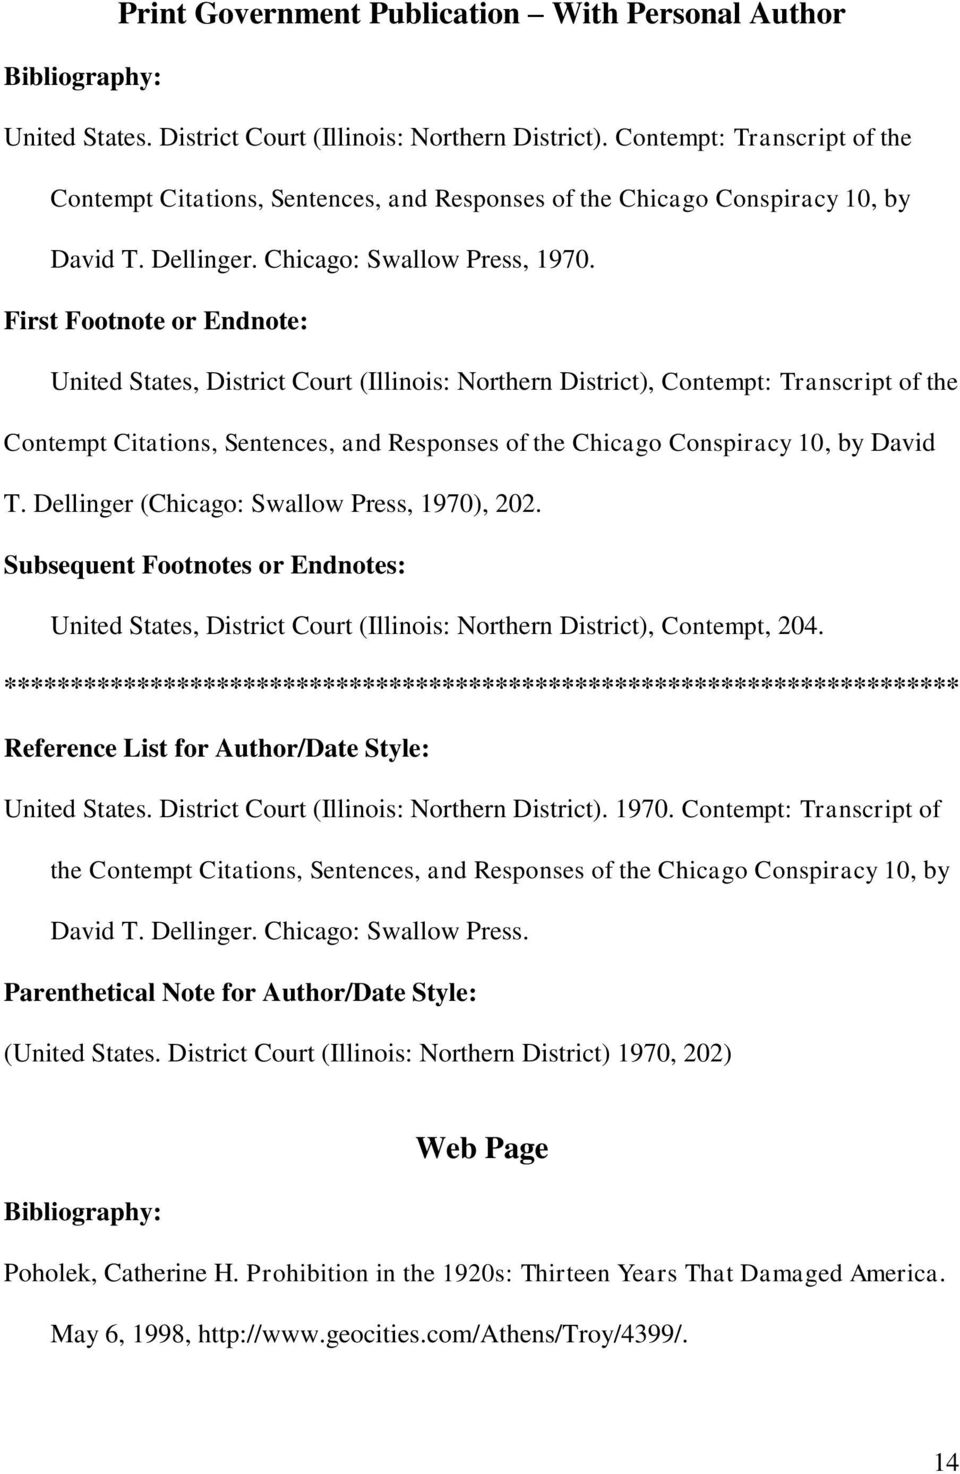 United States, District Court (Illinois: Northern District), Contempt: Transcript of the Contempt Citations, Sentences, and Responses of the Chicago Conspiracy 10, by David T.